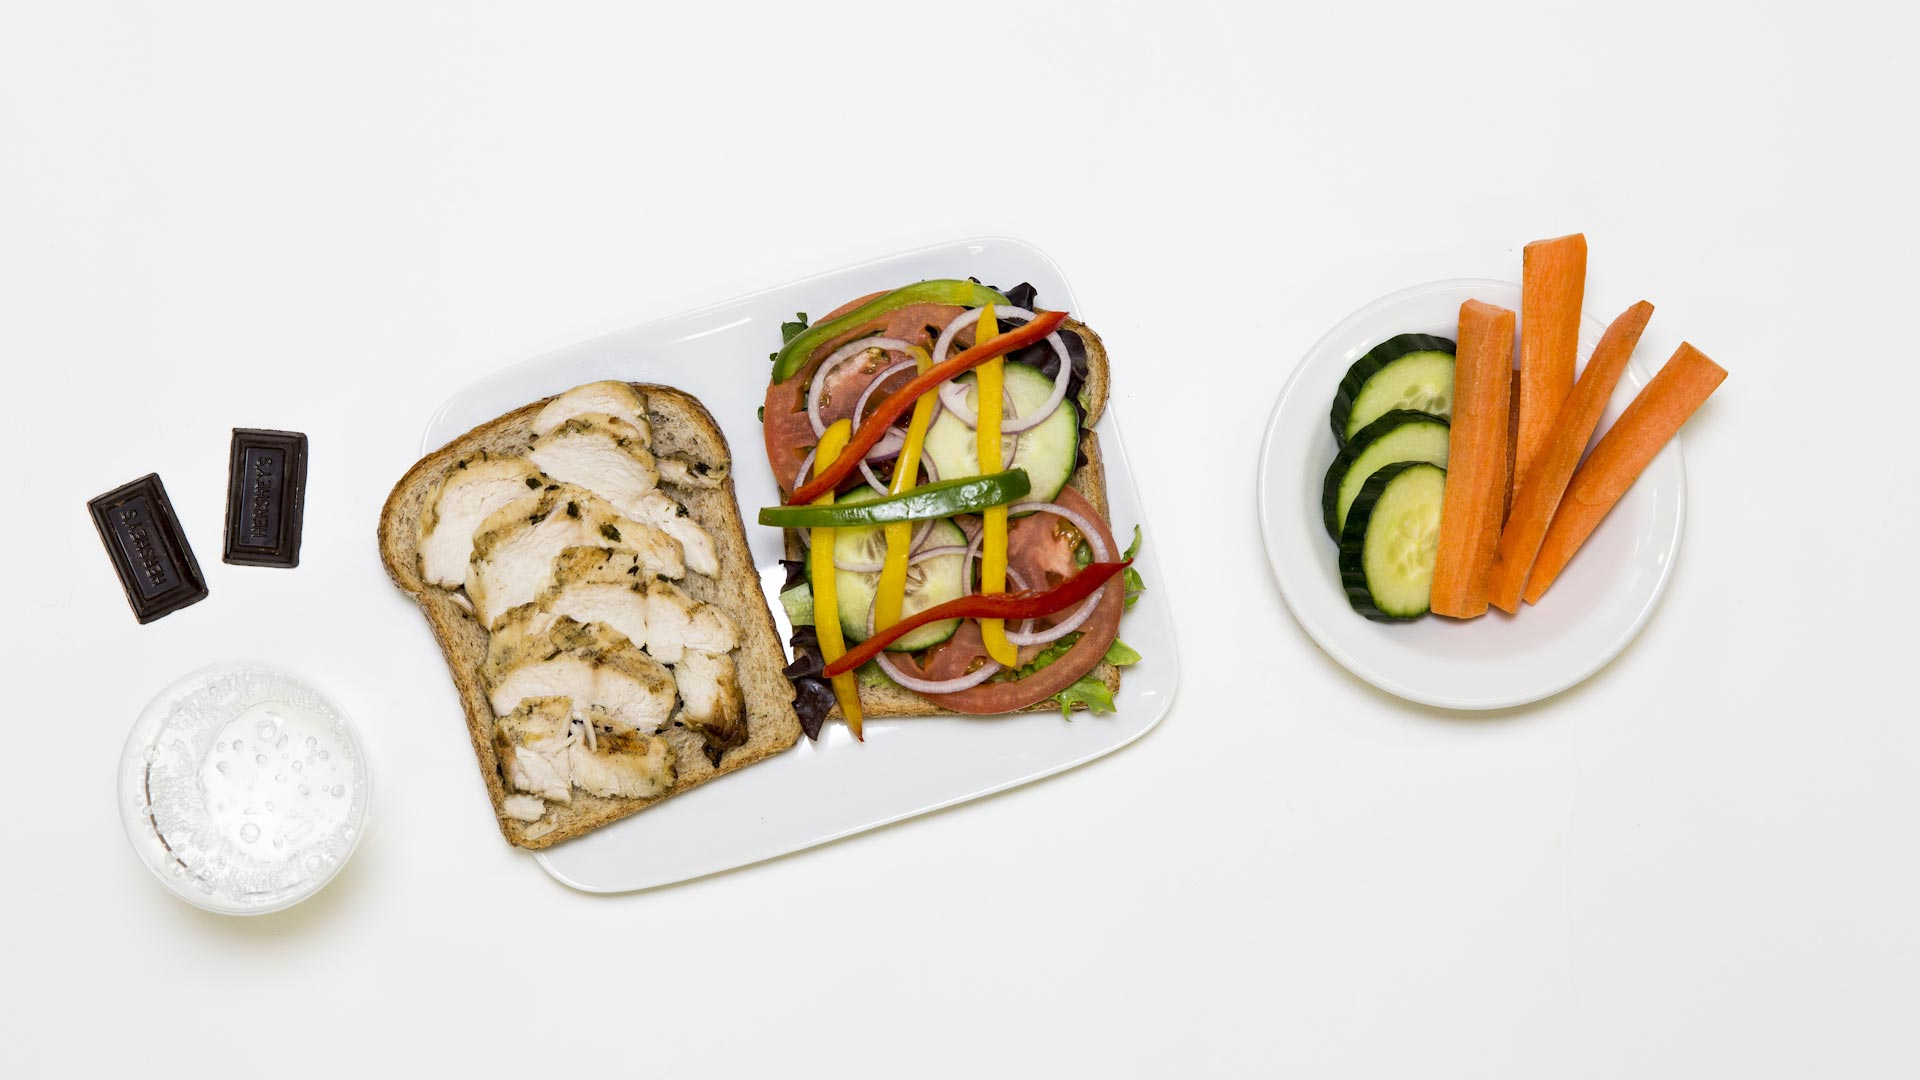 5 Tips for Making a Healthy Sandwich